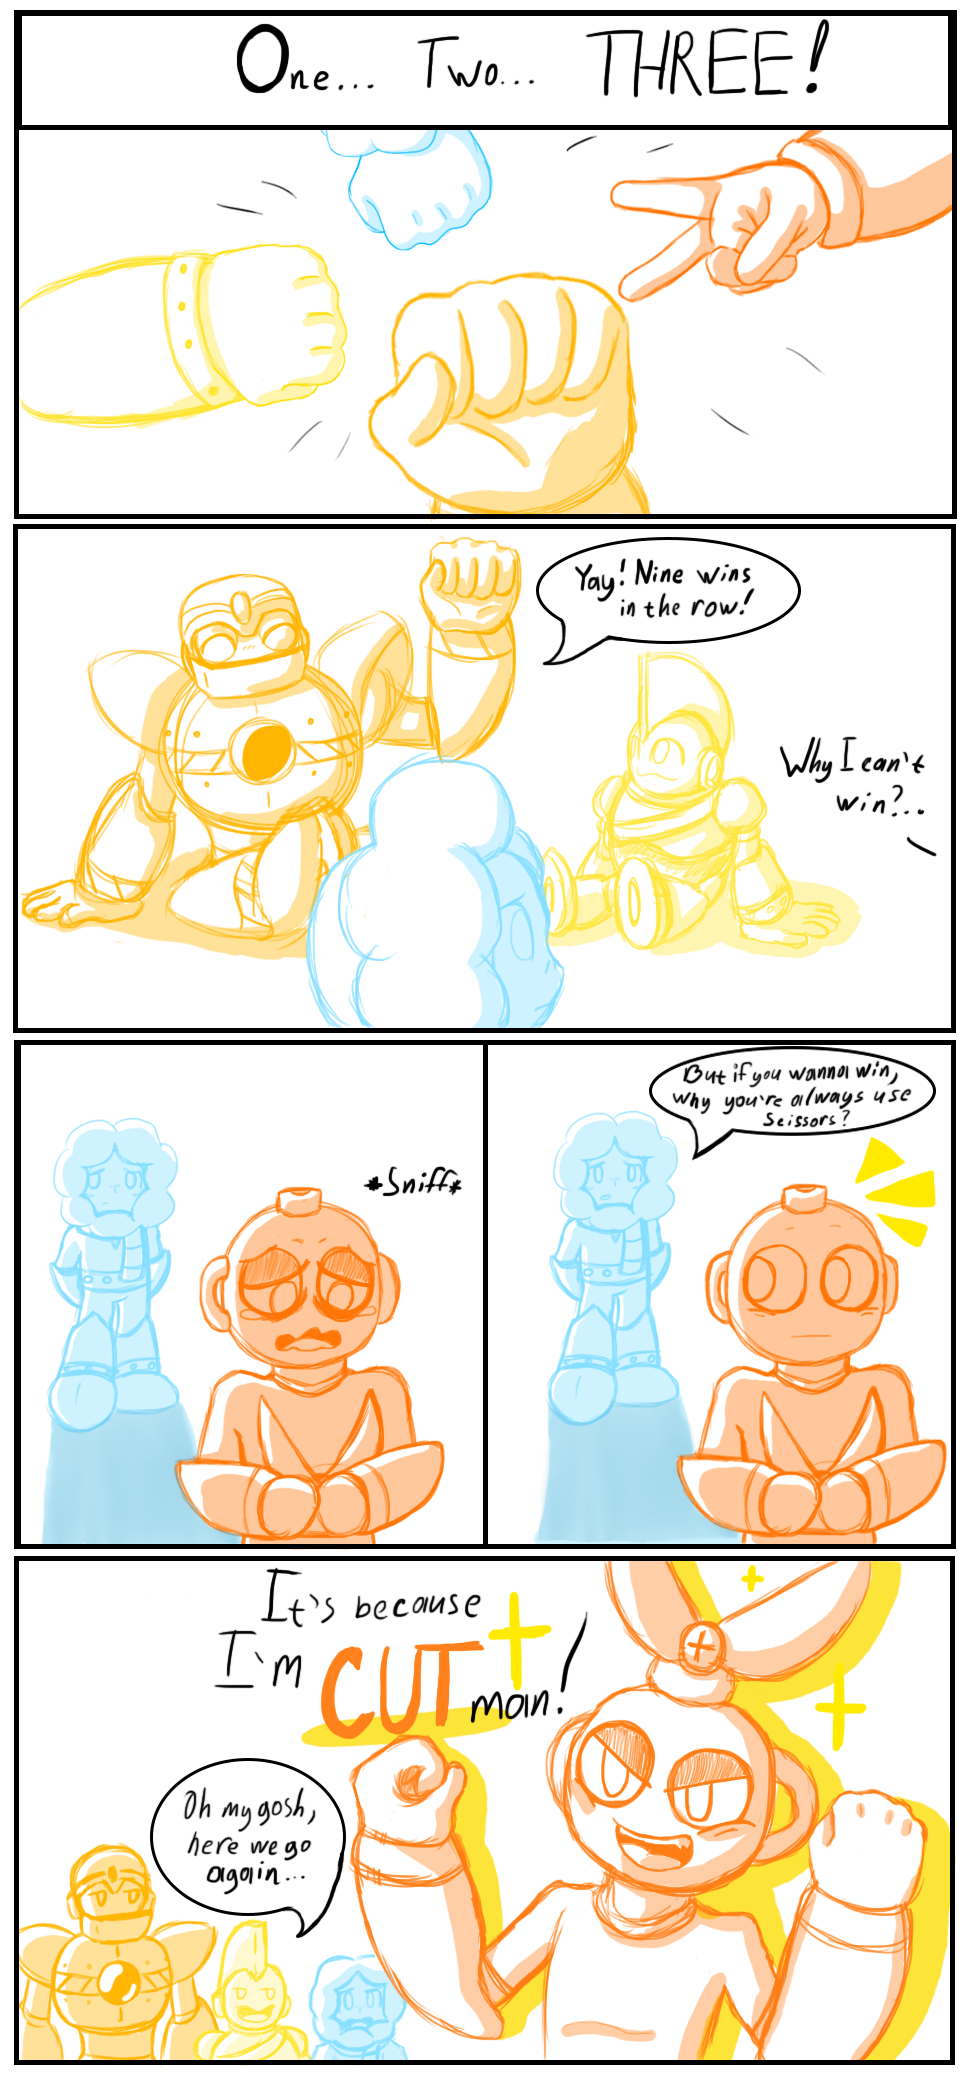 I can post my fan comic here, right?